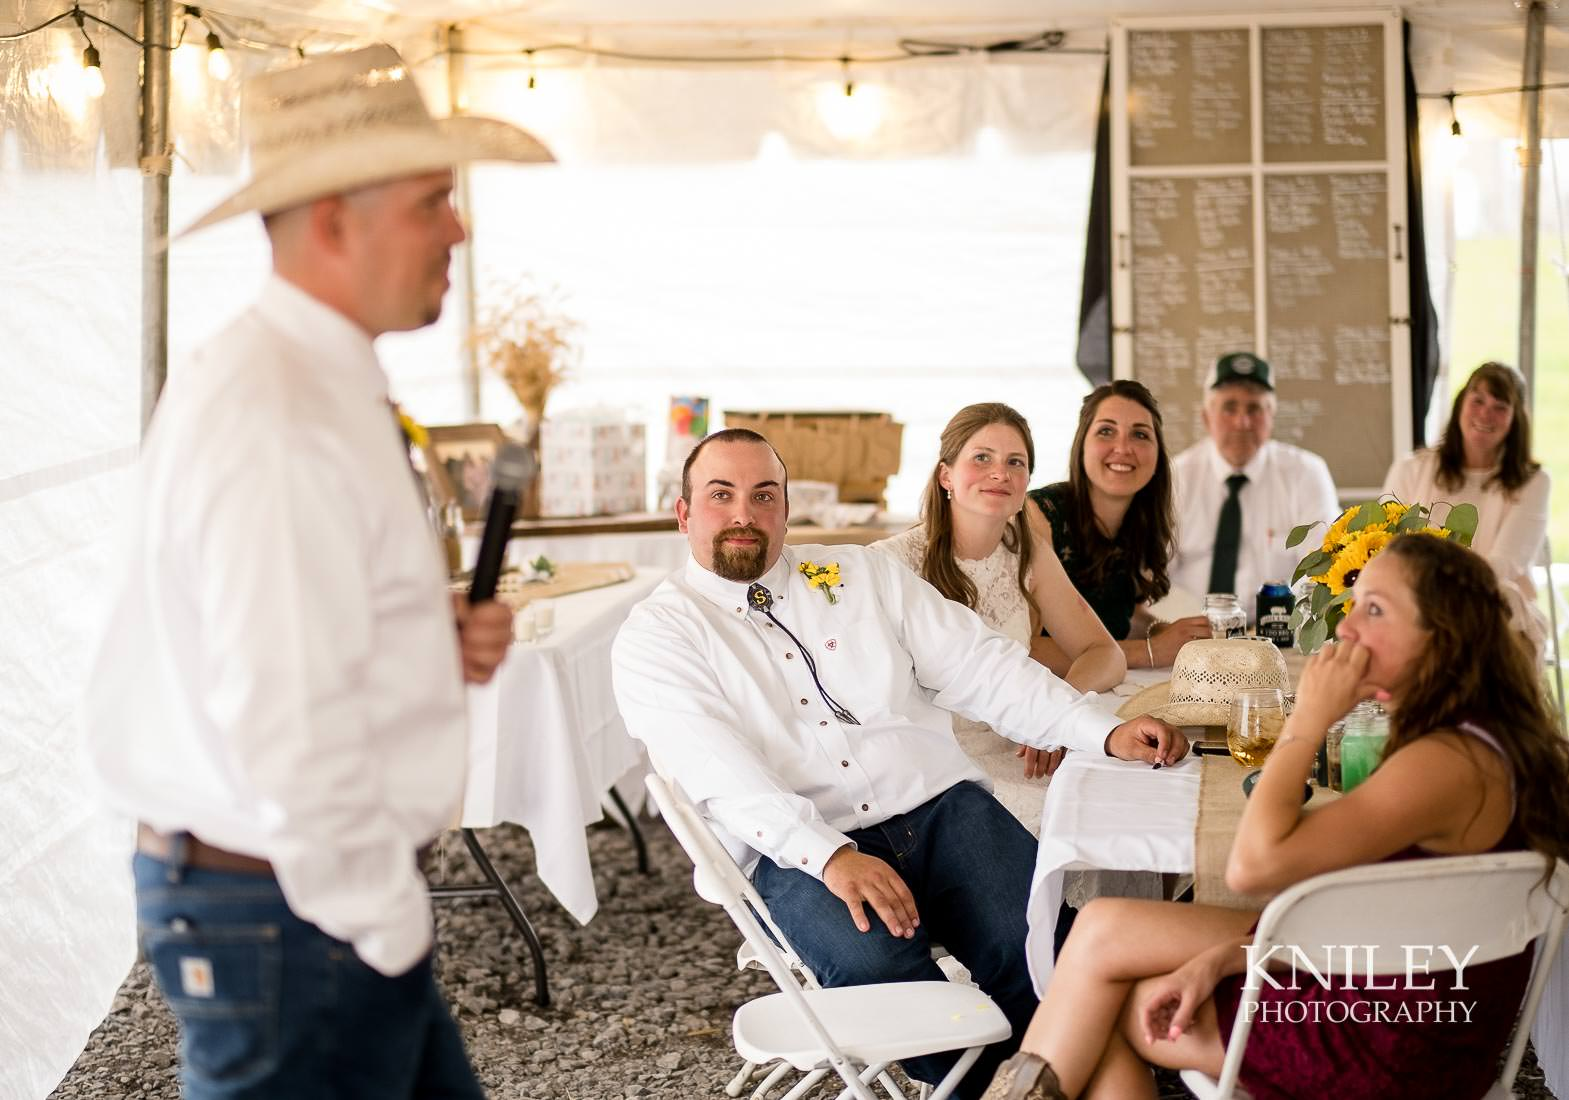 54-Western-New-York-farm-wedding-Kniley-Photography.jpg